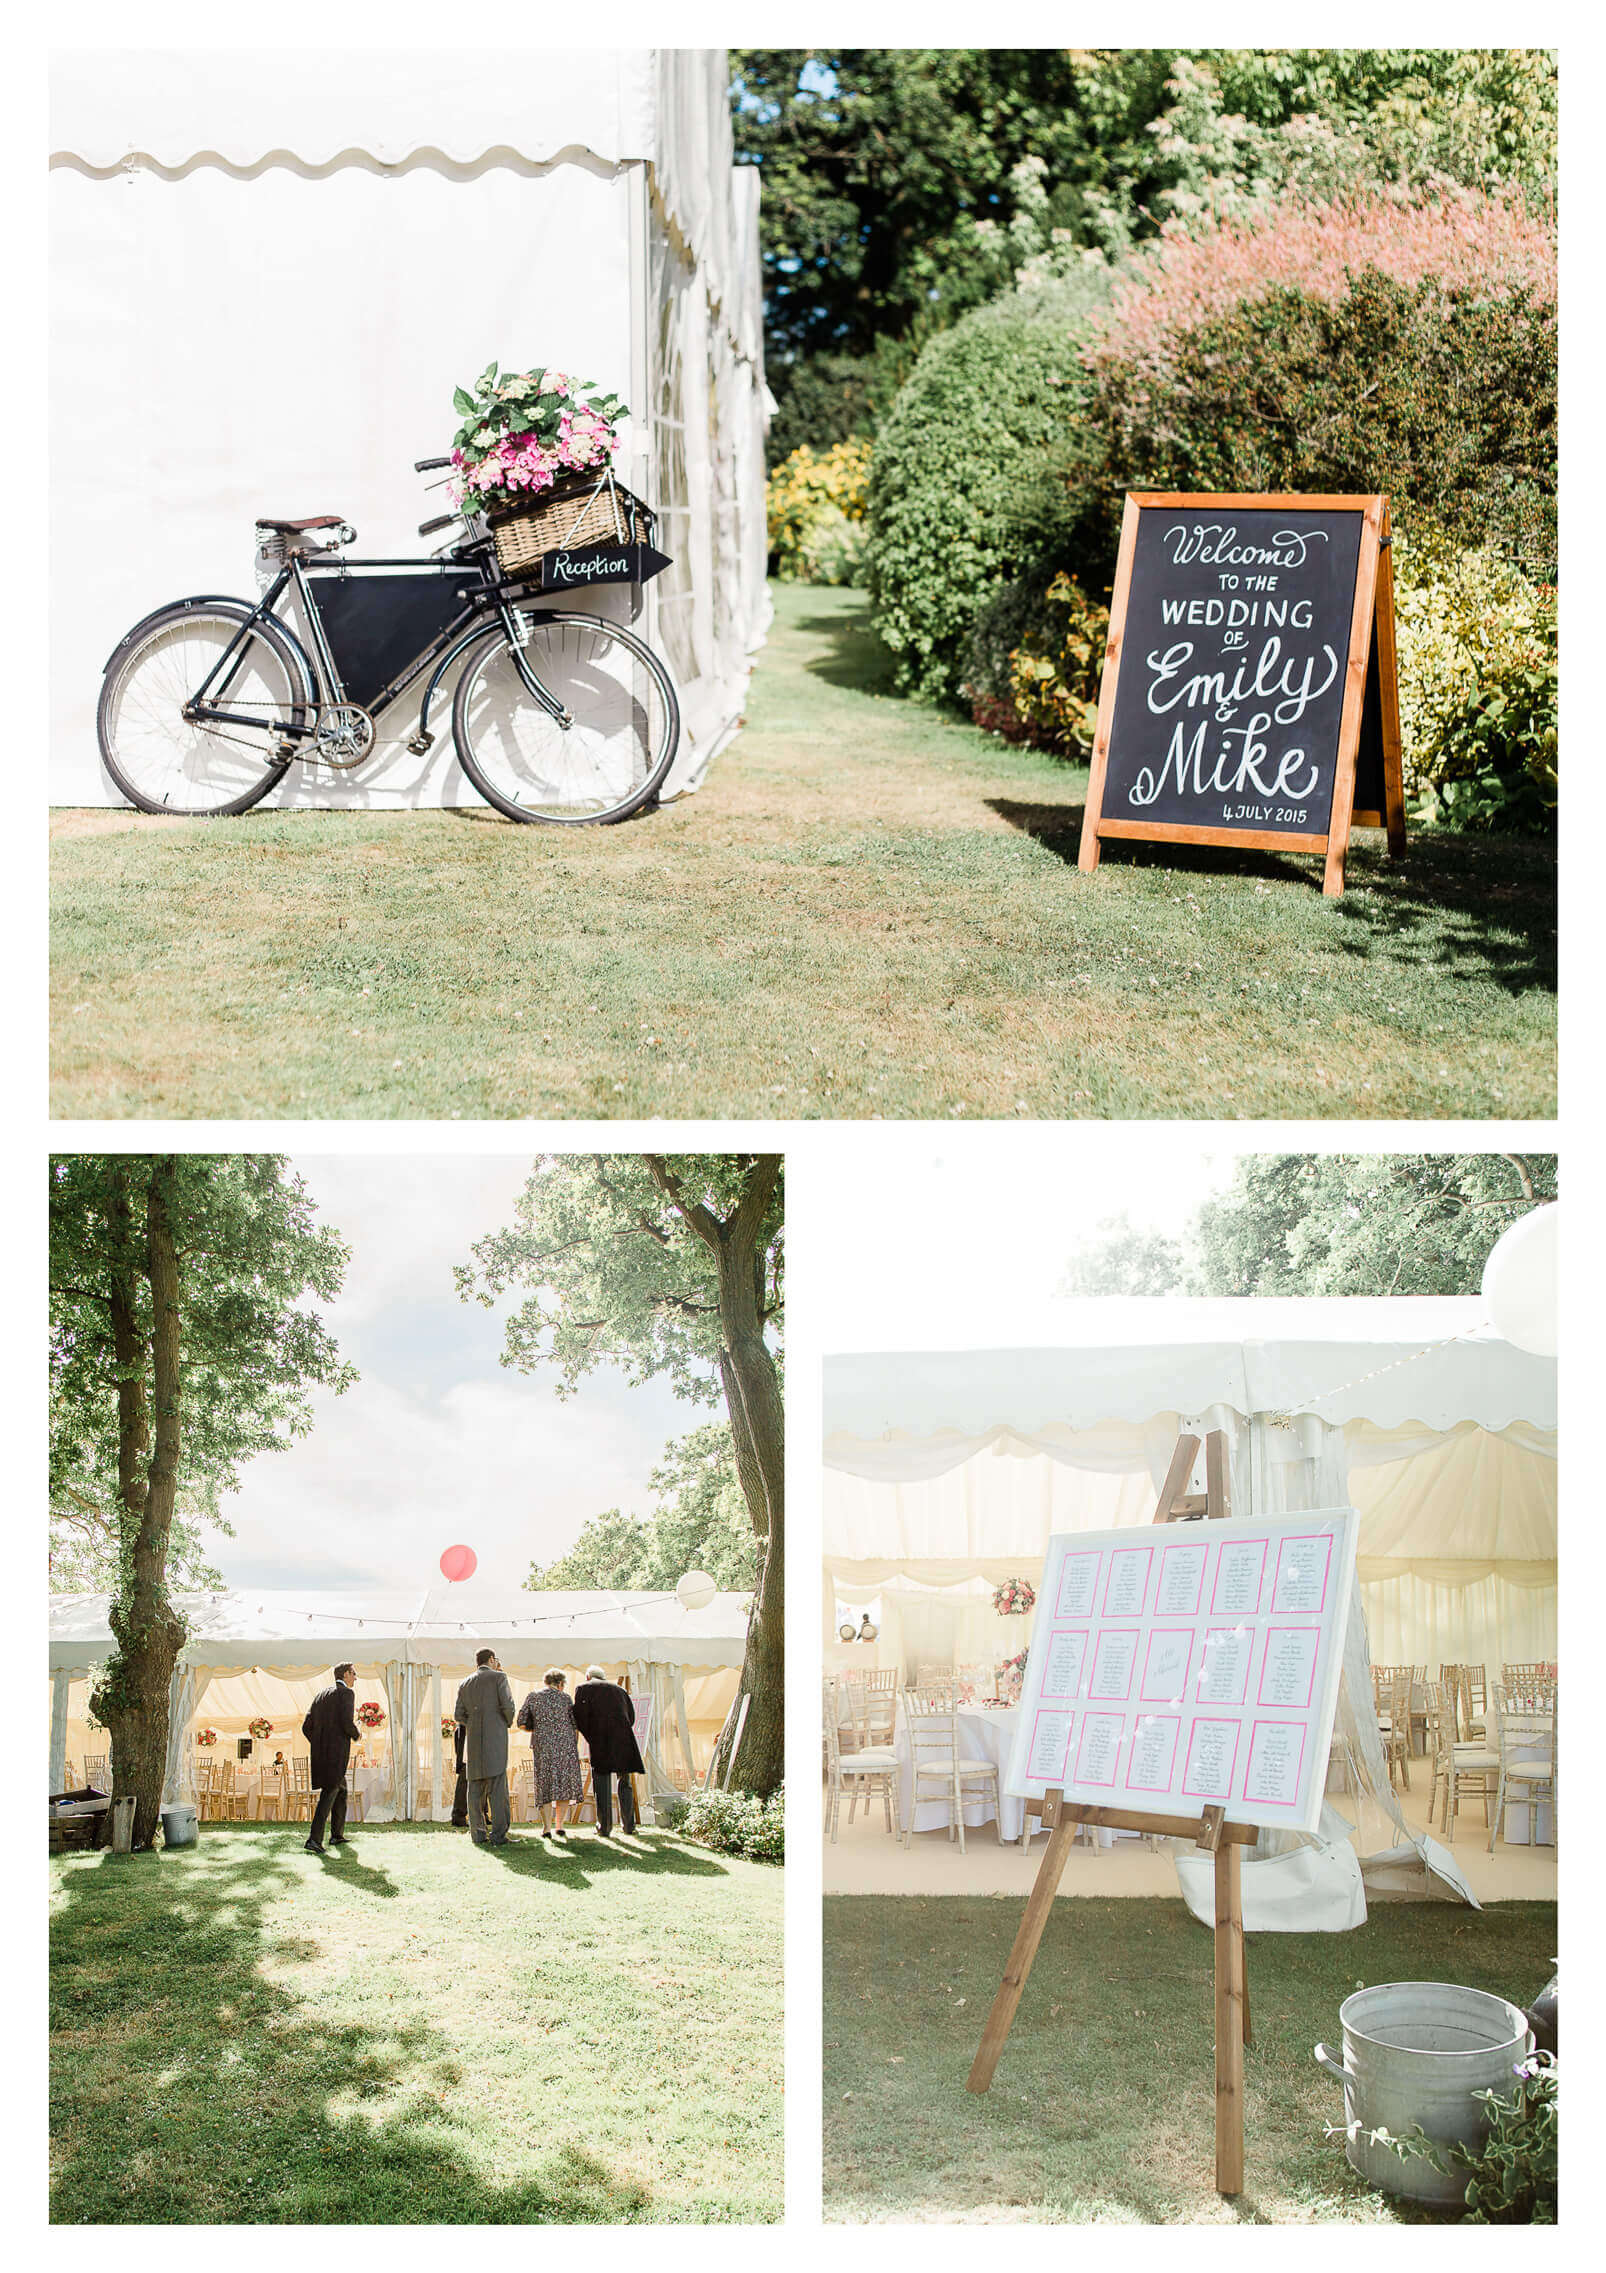 West Itchenor wedding breakfast in private marquee | West Sussex photographer